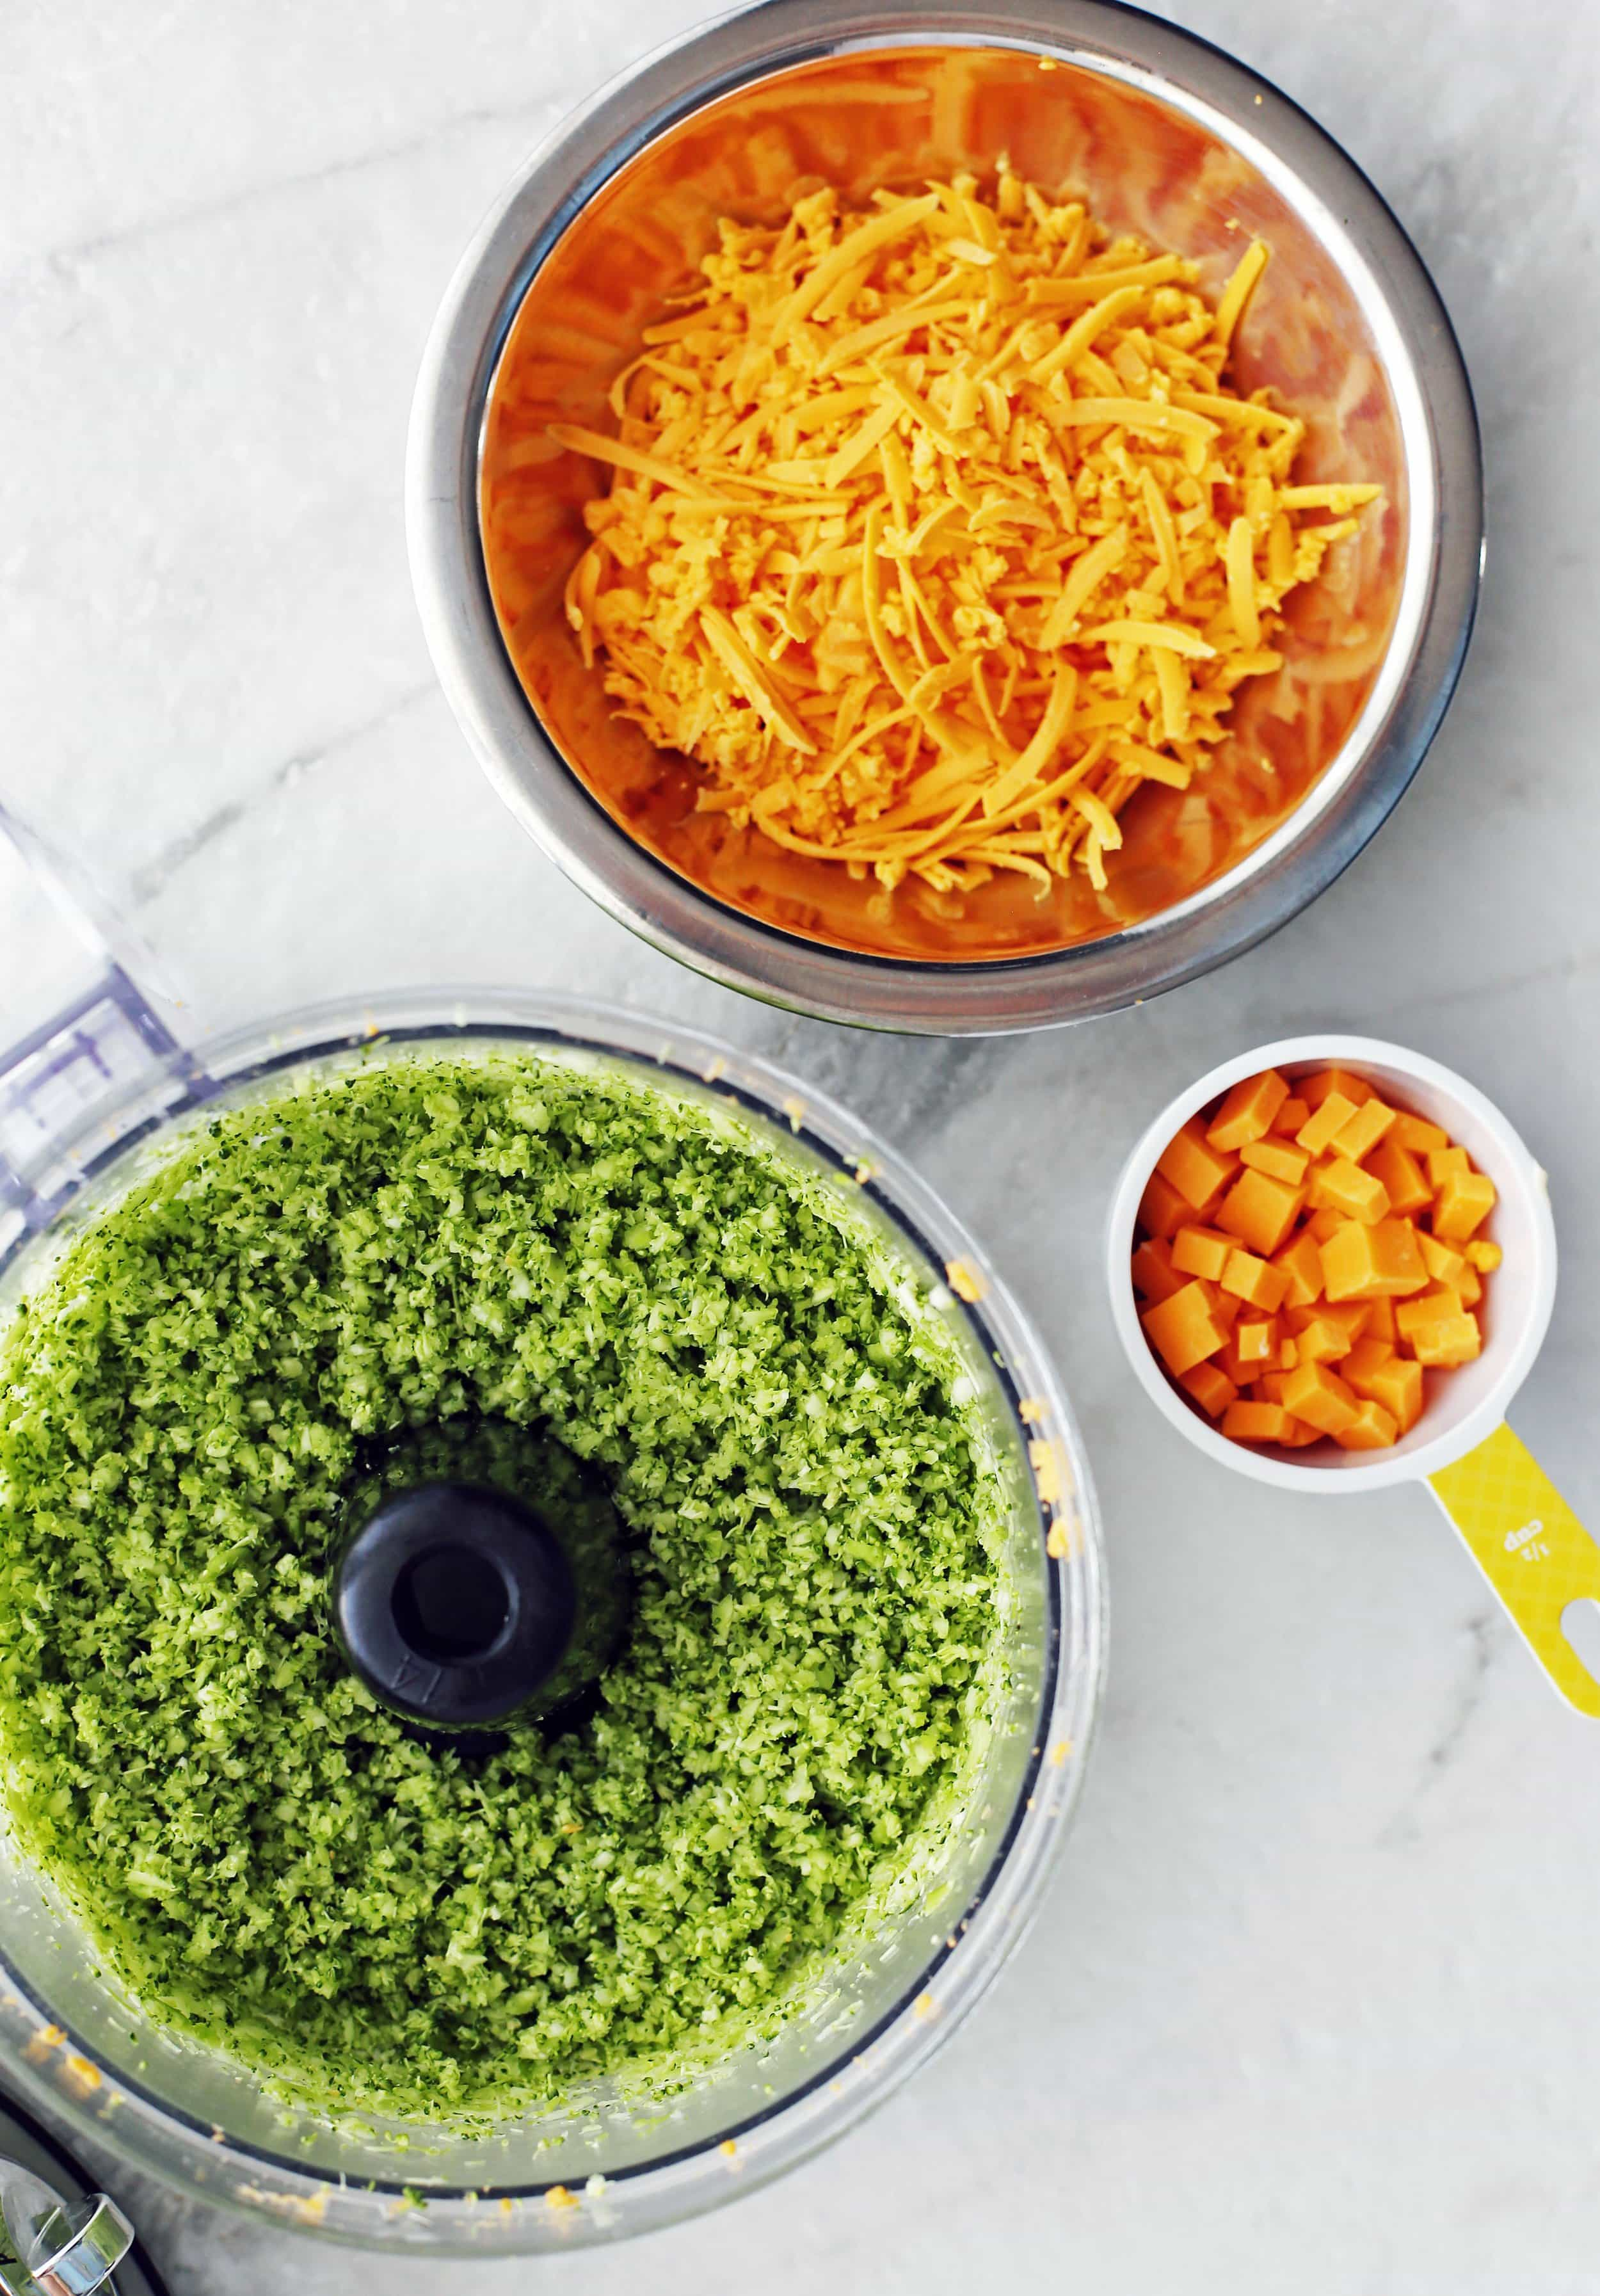 Shredded cheddar cheese, diced cheddar cheese, and finely diced broccoli in bowls.